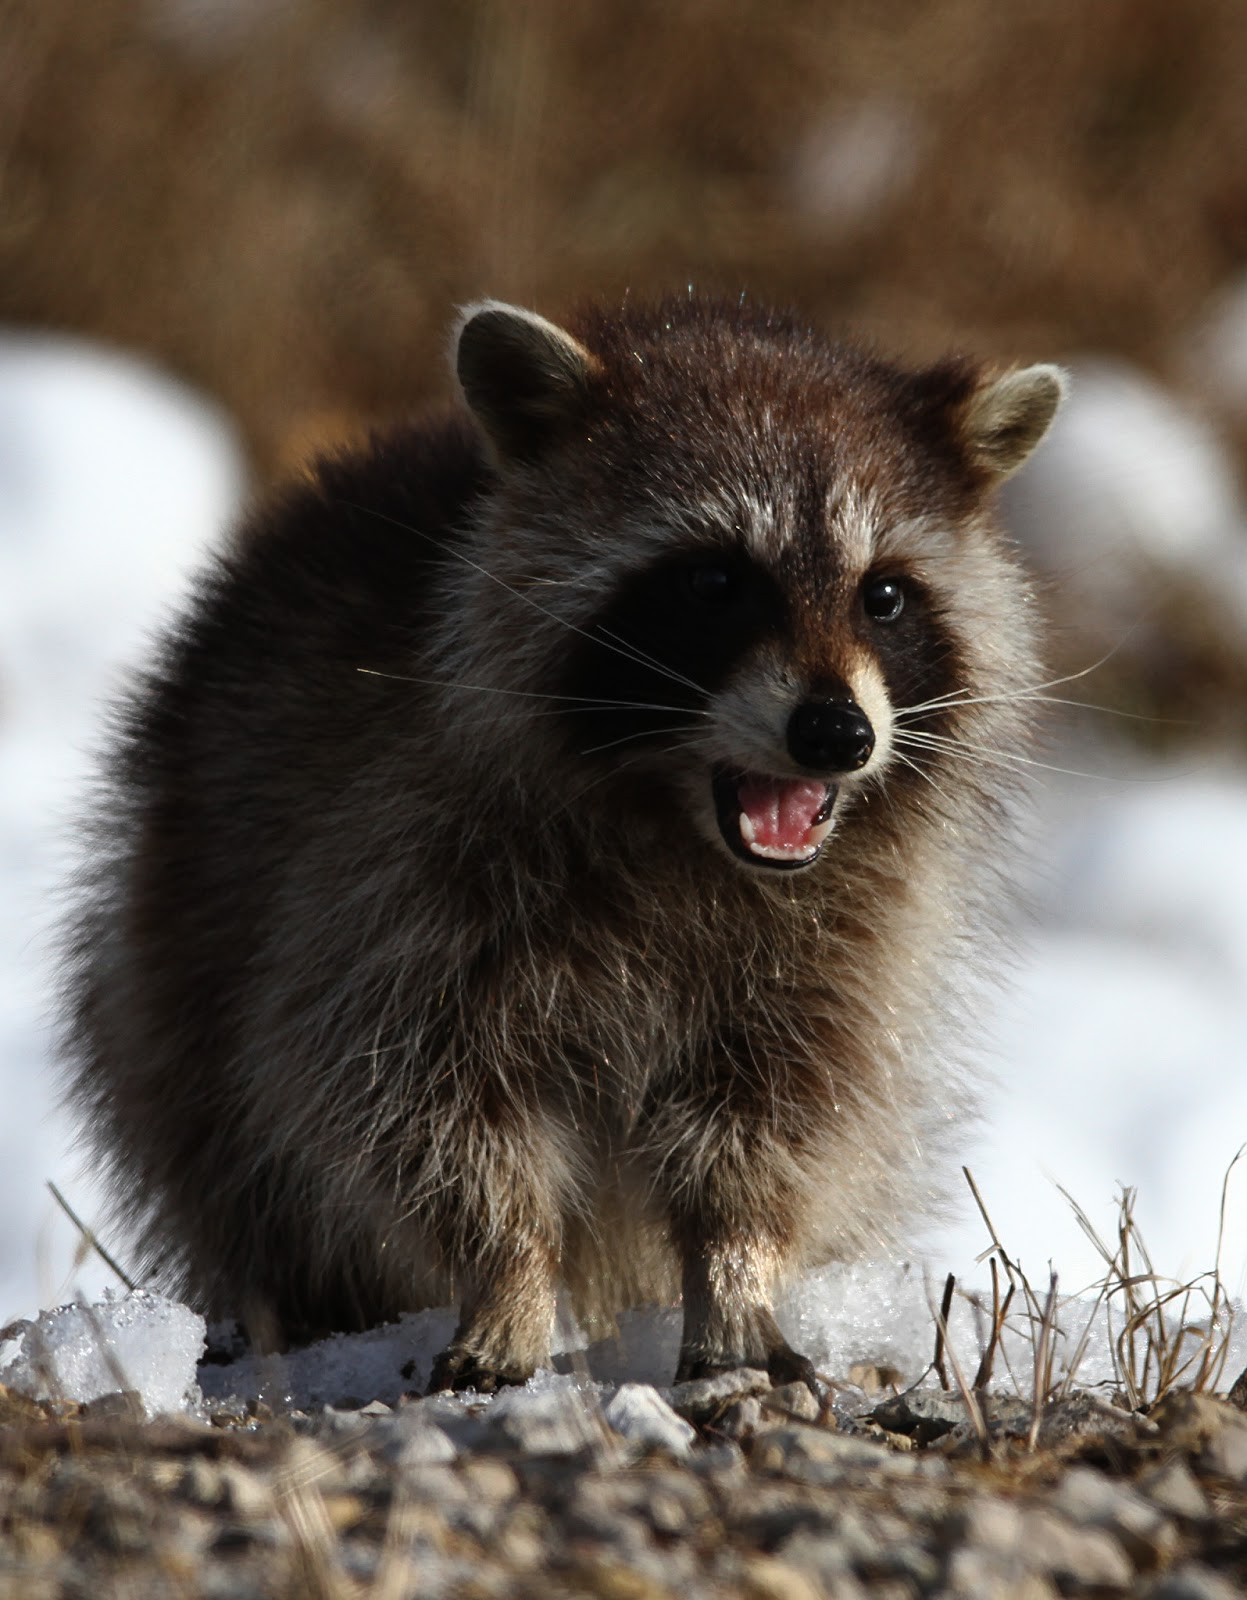 Hannibal S Animals Raccoon Youngsters Foraging